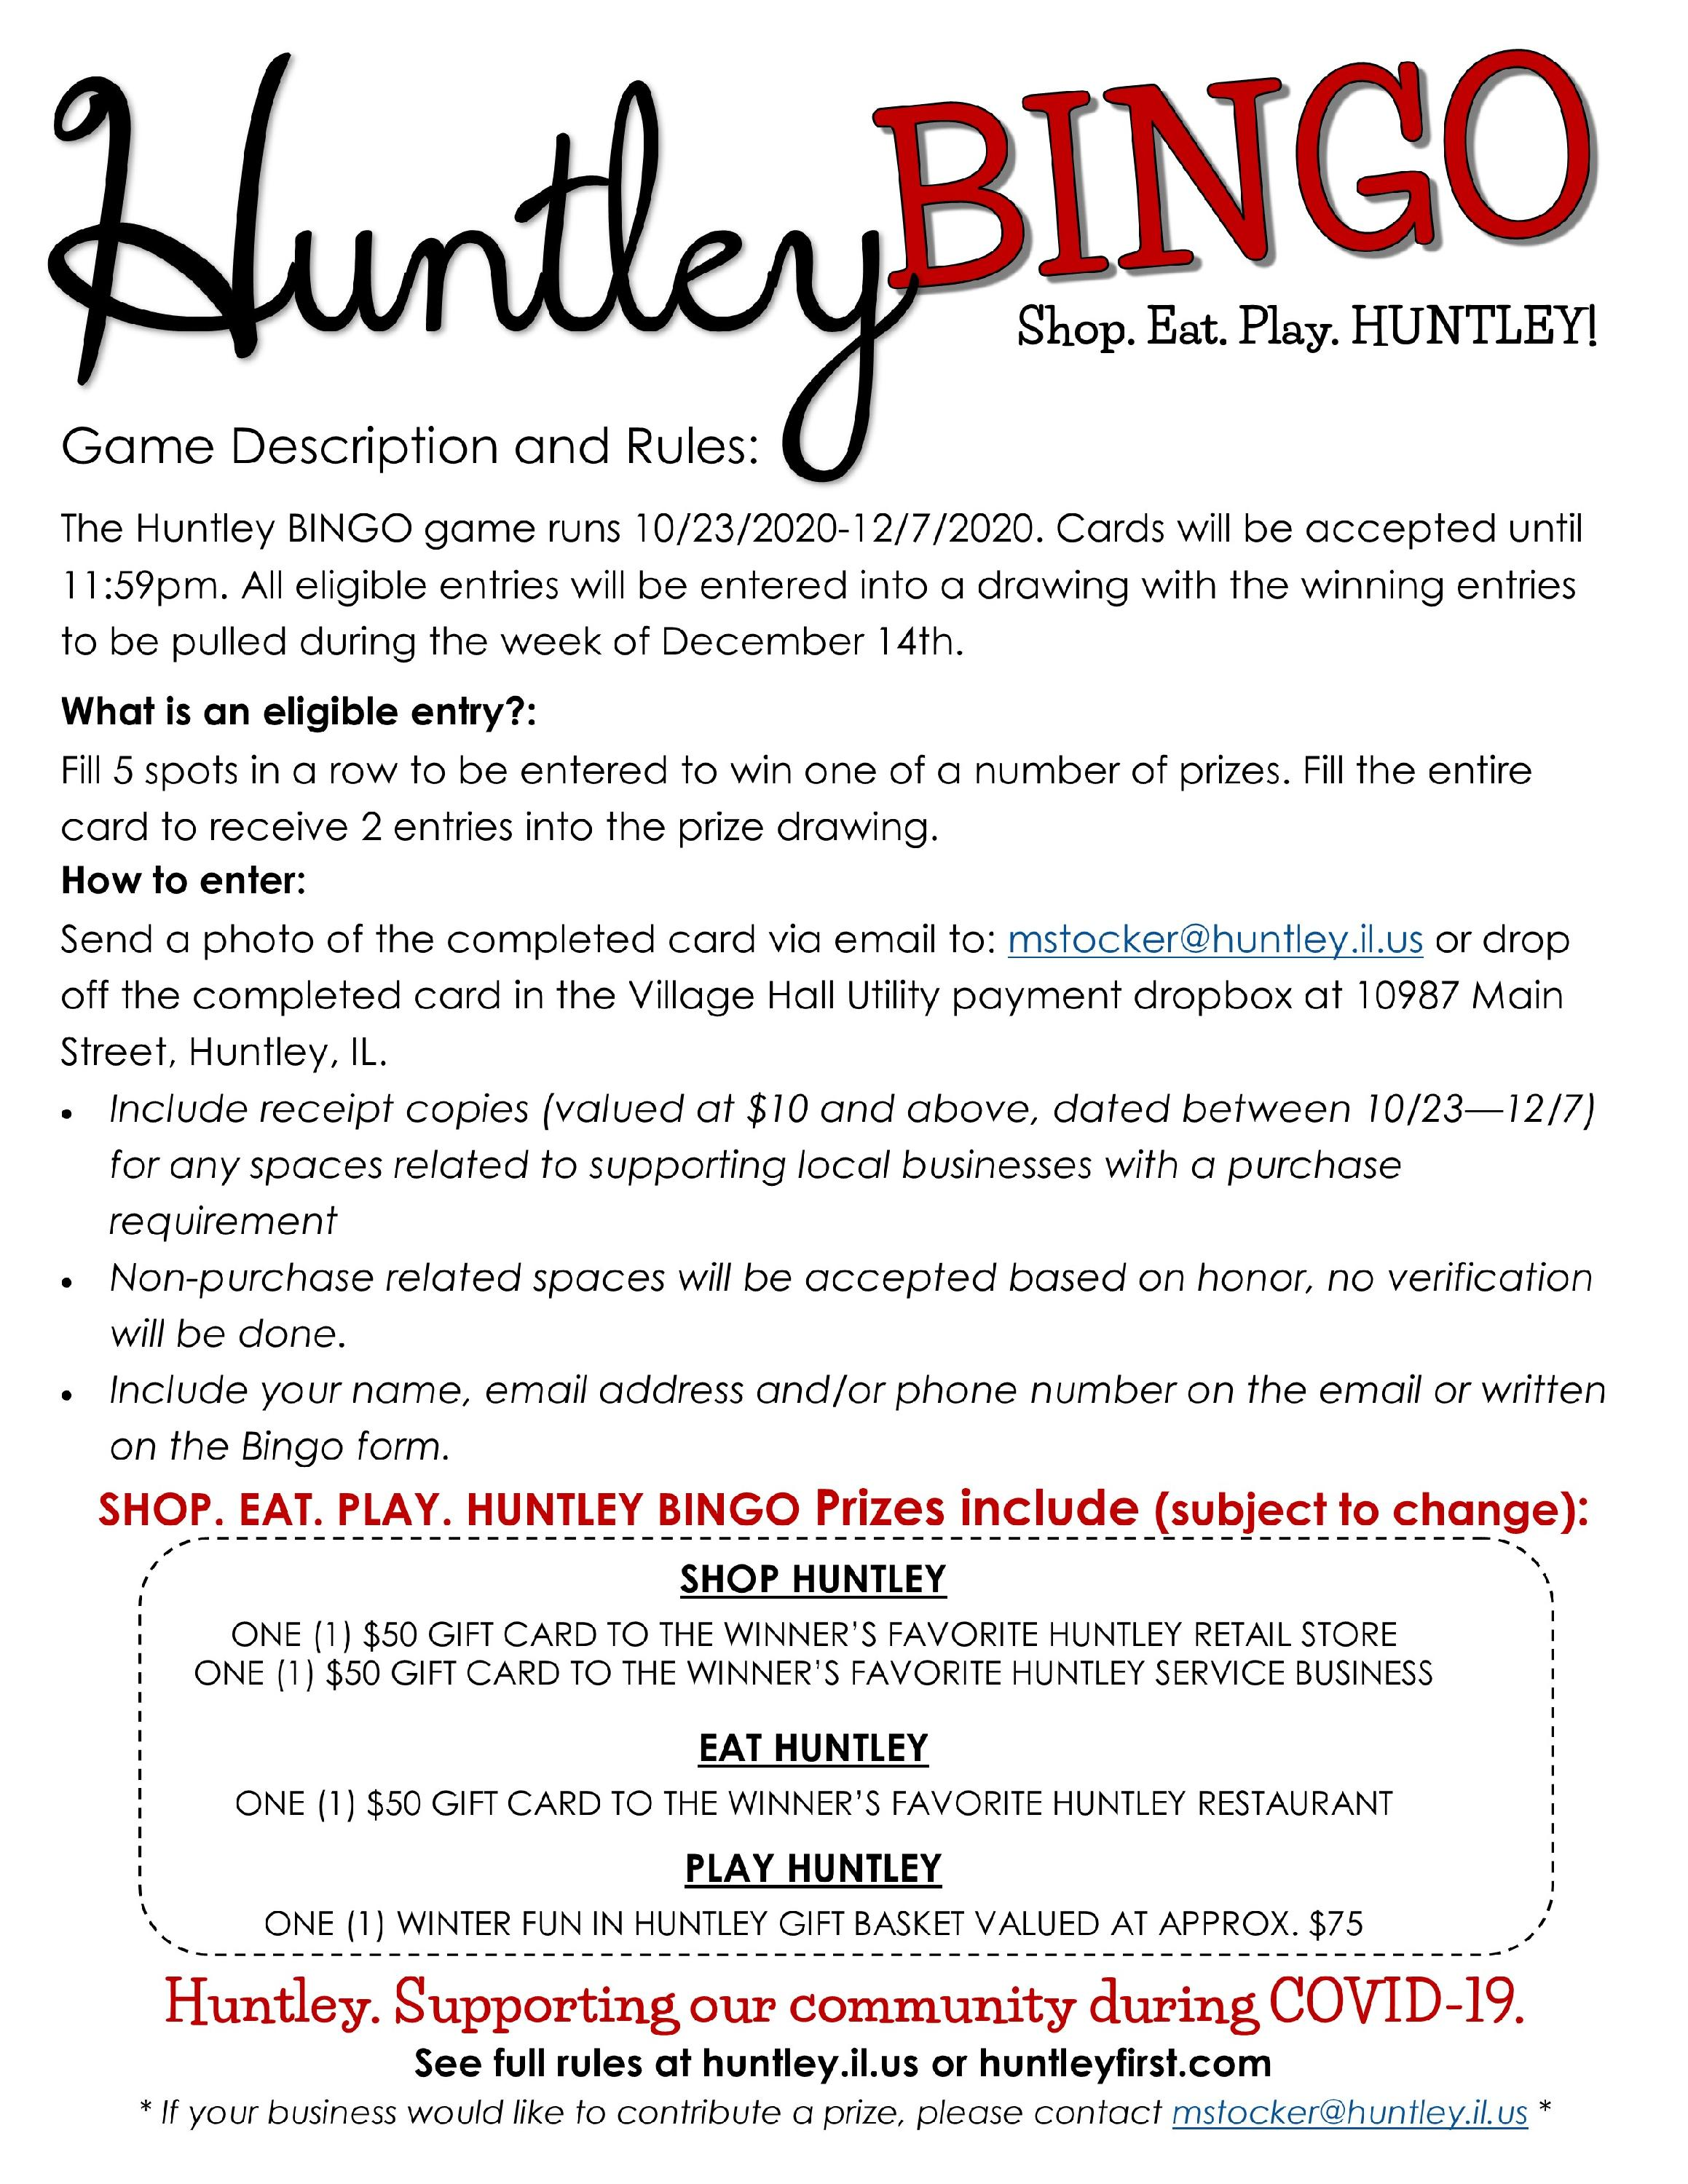 Huntley Bingo Fall 2020 Description and Rules